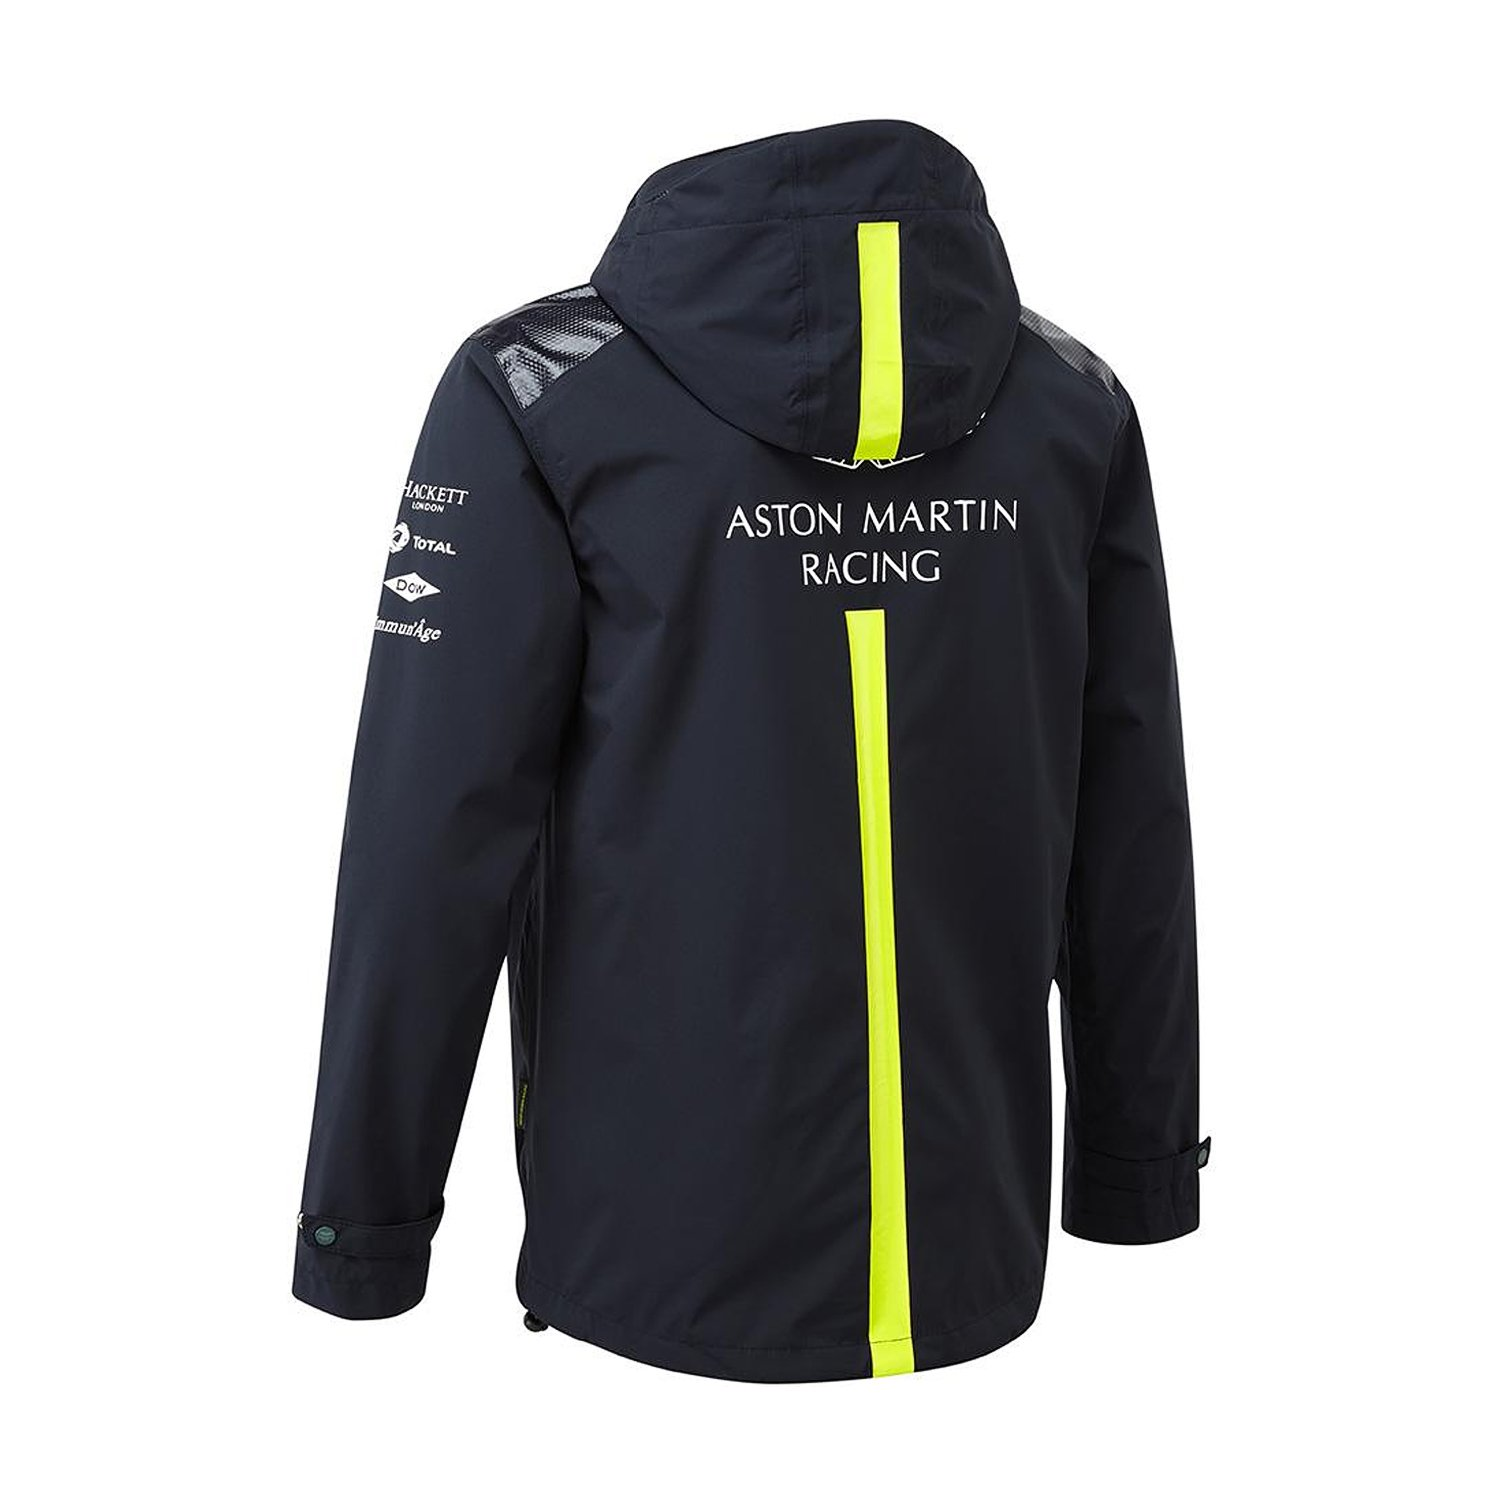 5d2009a2f78 Aston martin motorsport men team rain jacket navy blue clothing jpg  1500x1500 Ford racing fleece jacket